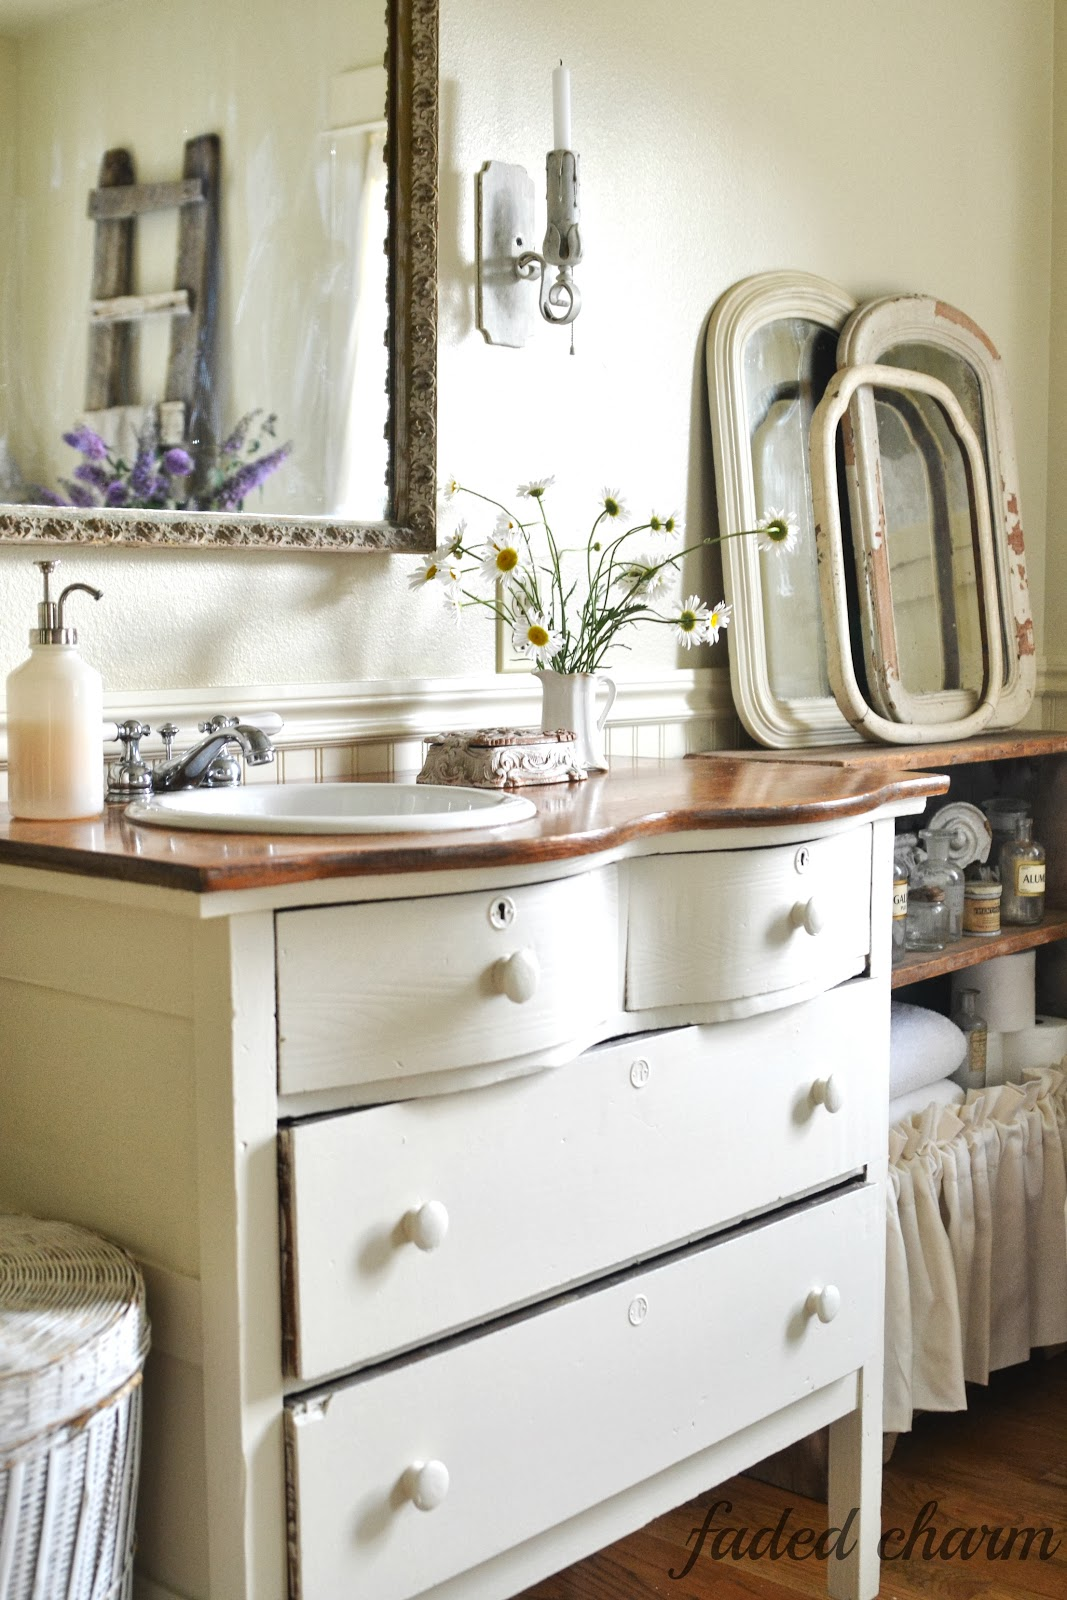 Faded charm a romantic vision - Bathroom vanities from old dressers ...